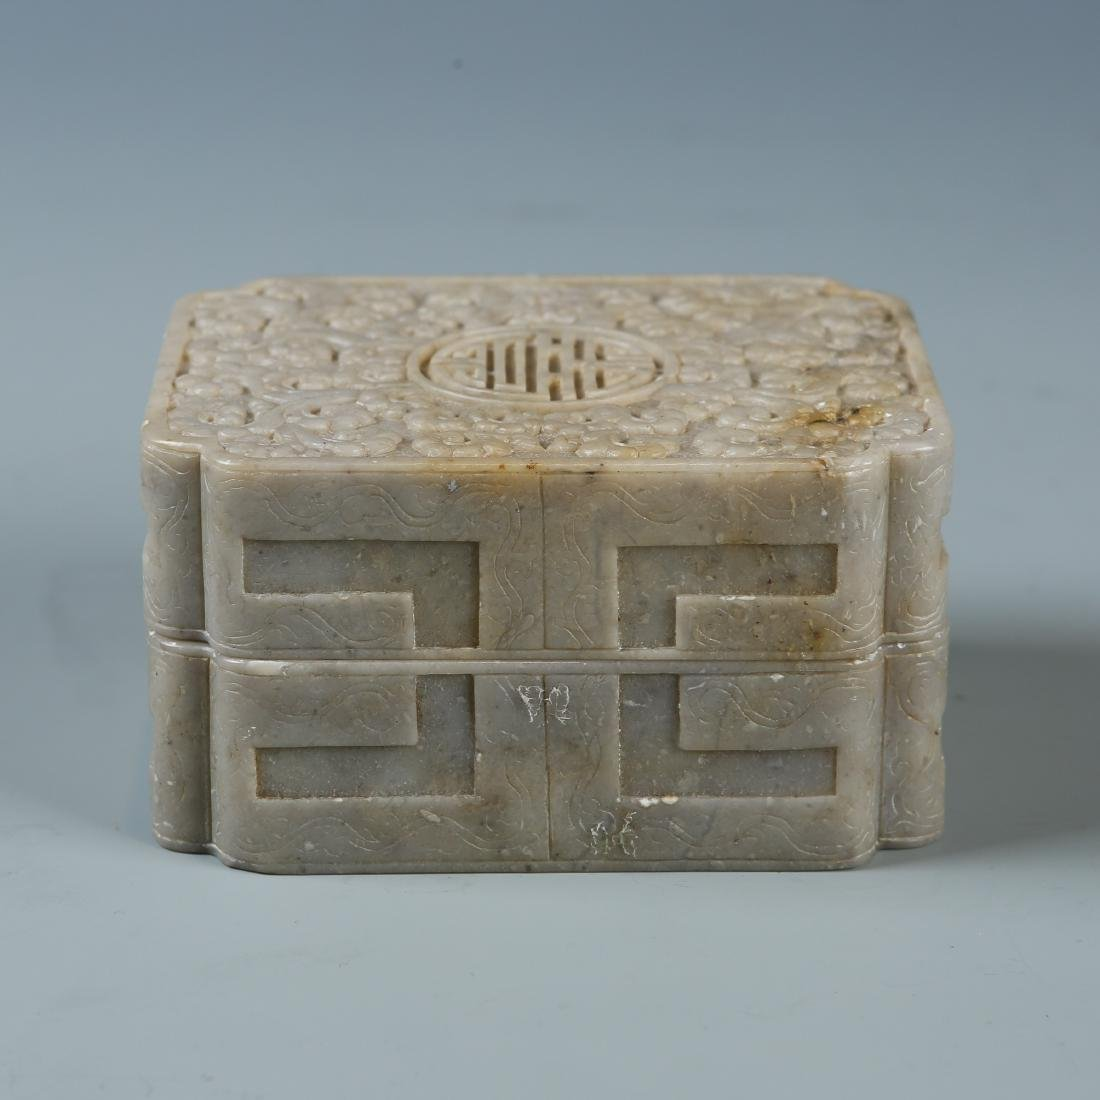 Carved Soapstone Box with Mark - 2